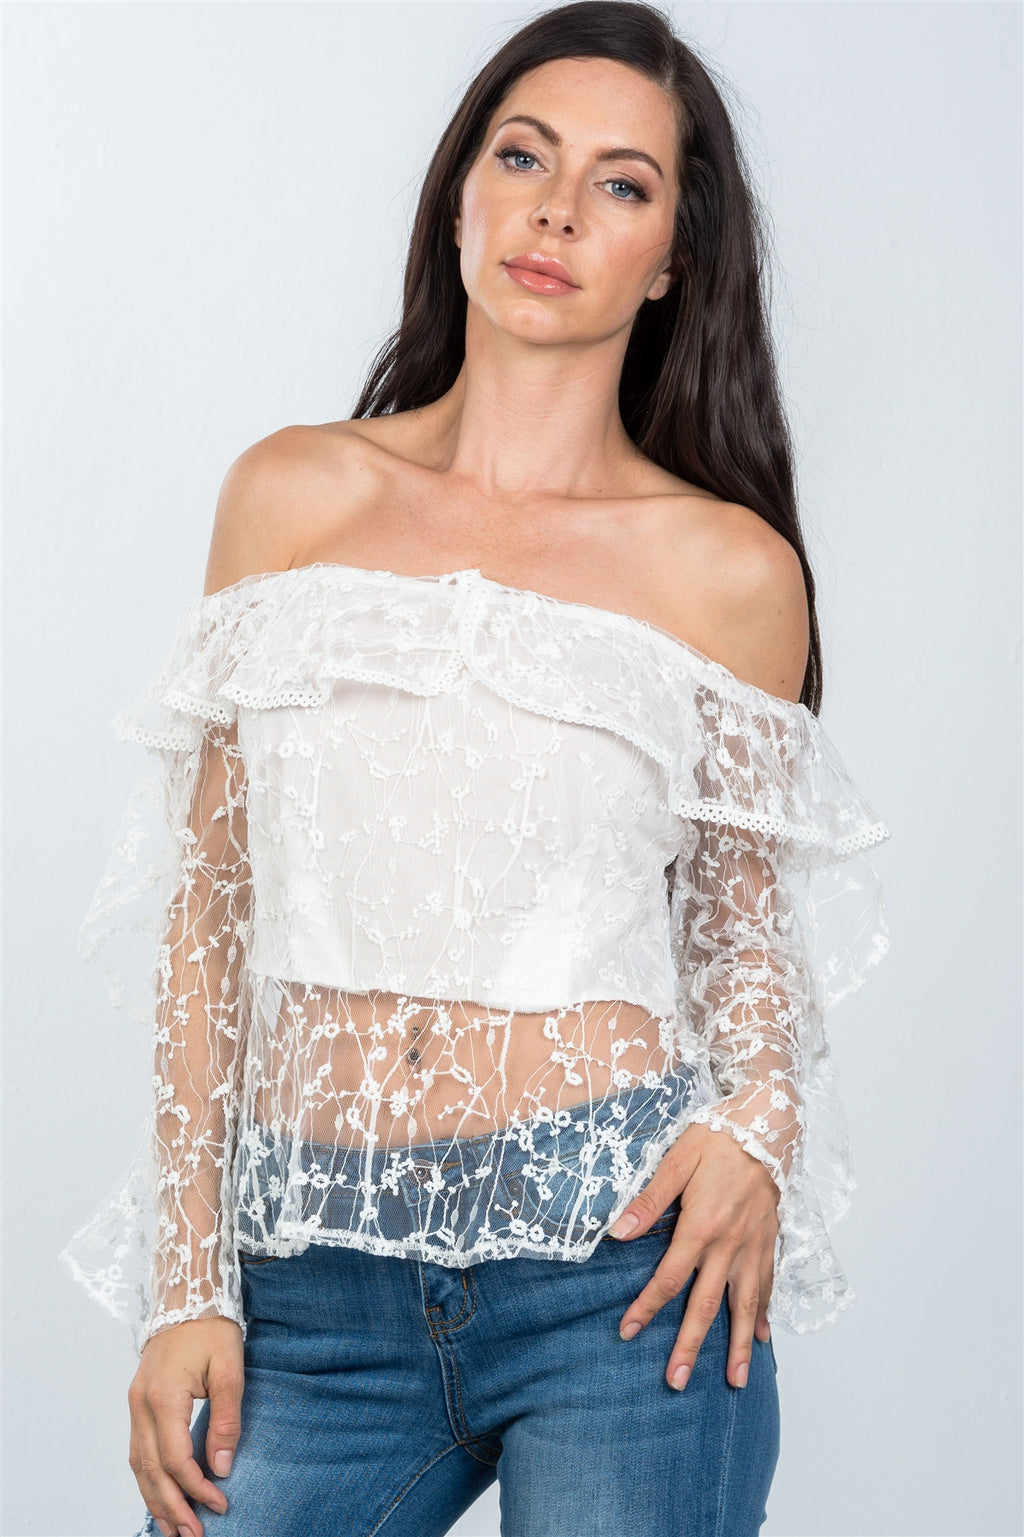 Ladies fashion sheer floral textured off the shoulder top